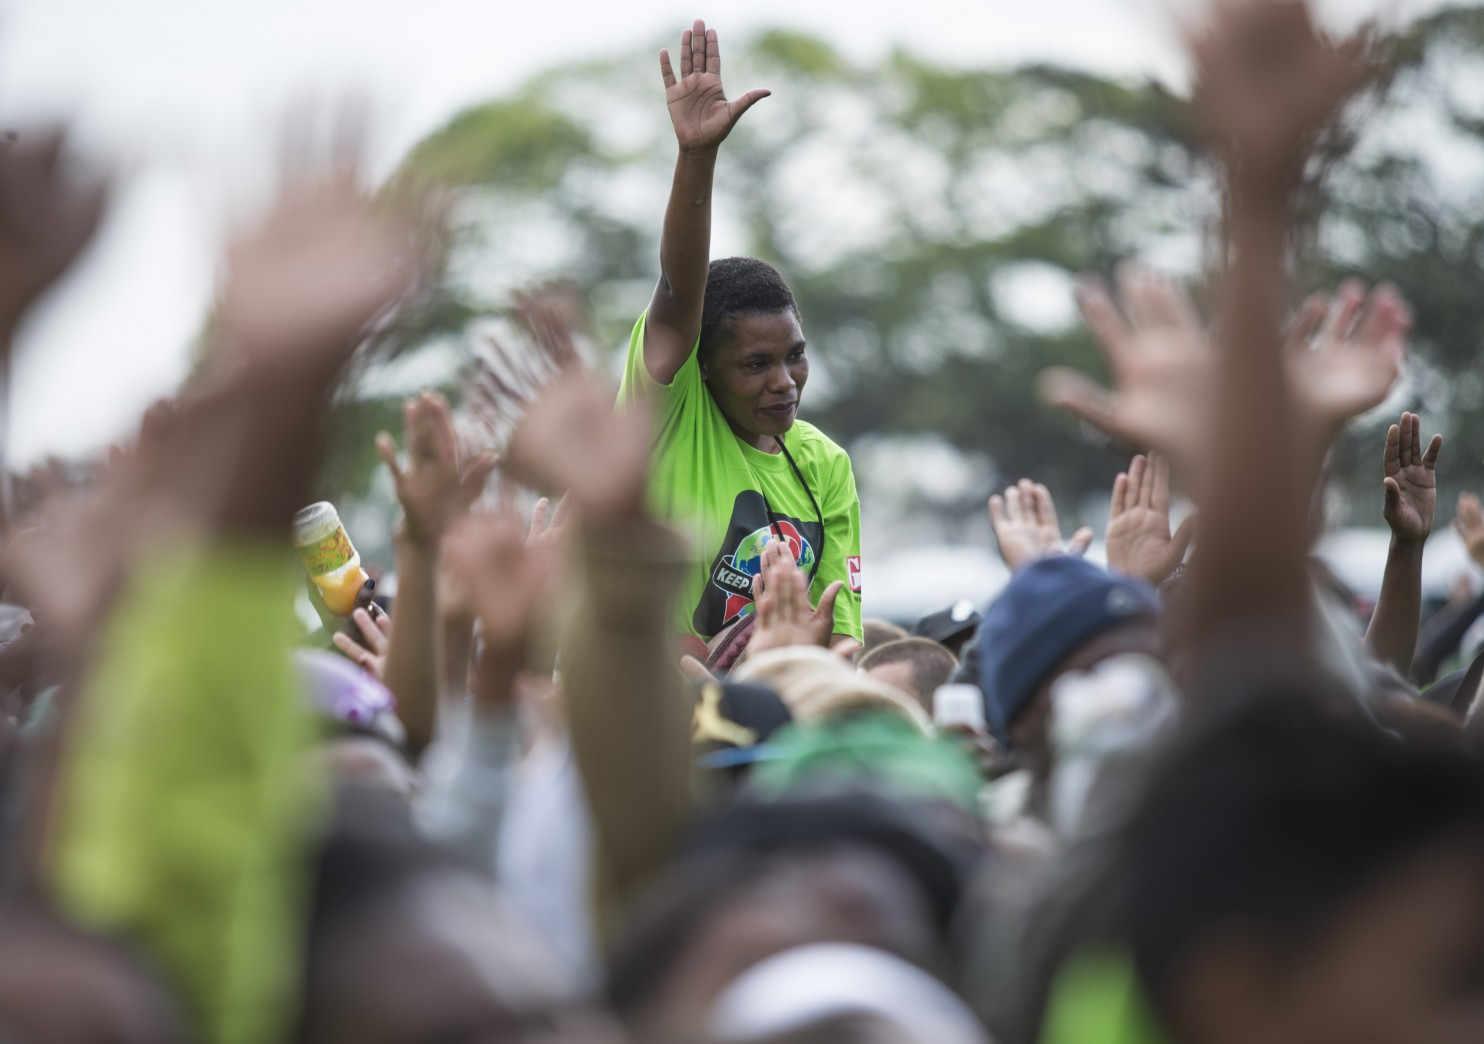 People enjoy the entertainment ahead of the 'Keep the Promis'e march to Sahara Stadium Kingsmead on Saturday in Durban, South Africa. (AP/For AIDS Healthcare Foundation)